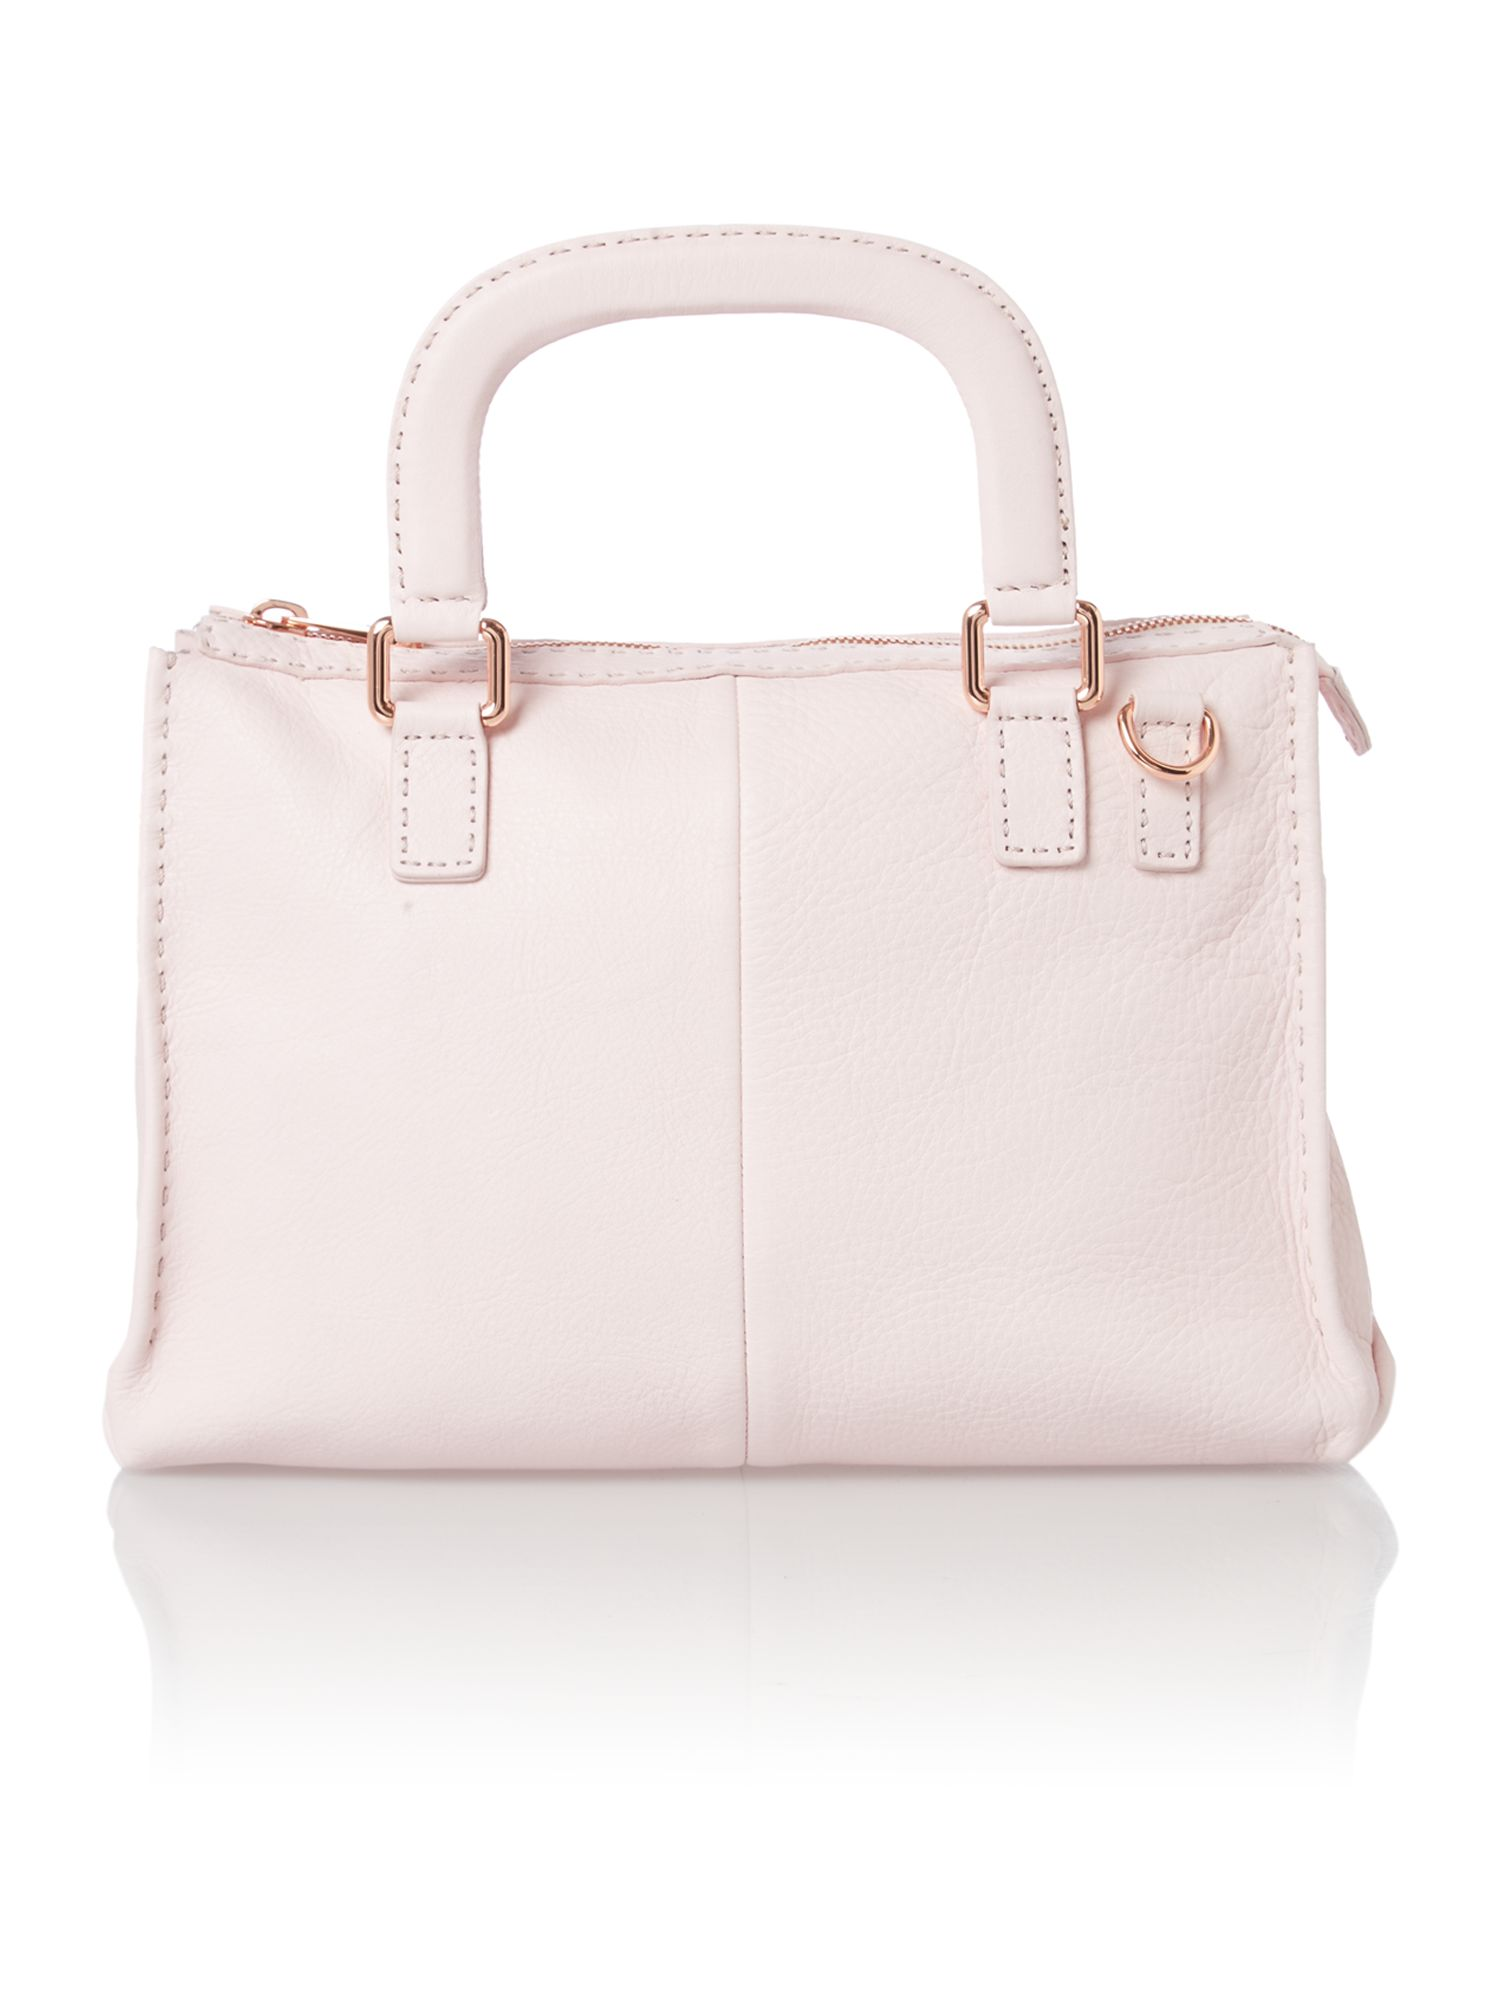 Pale pink medium leather tote